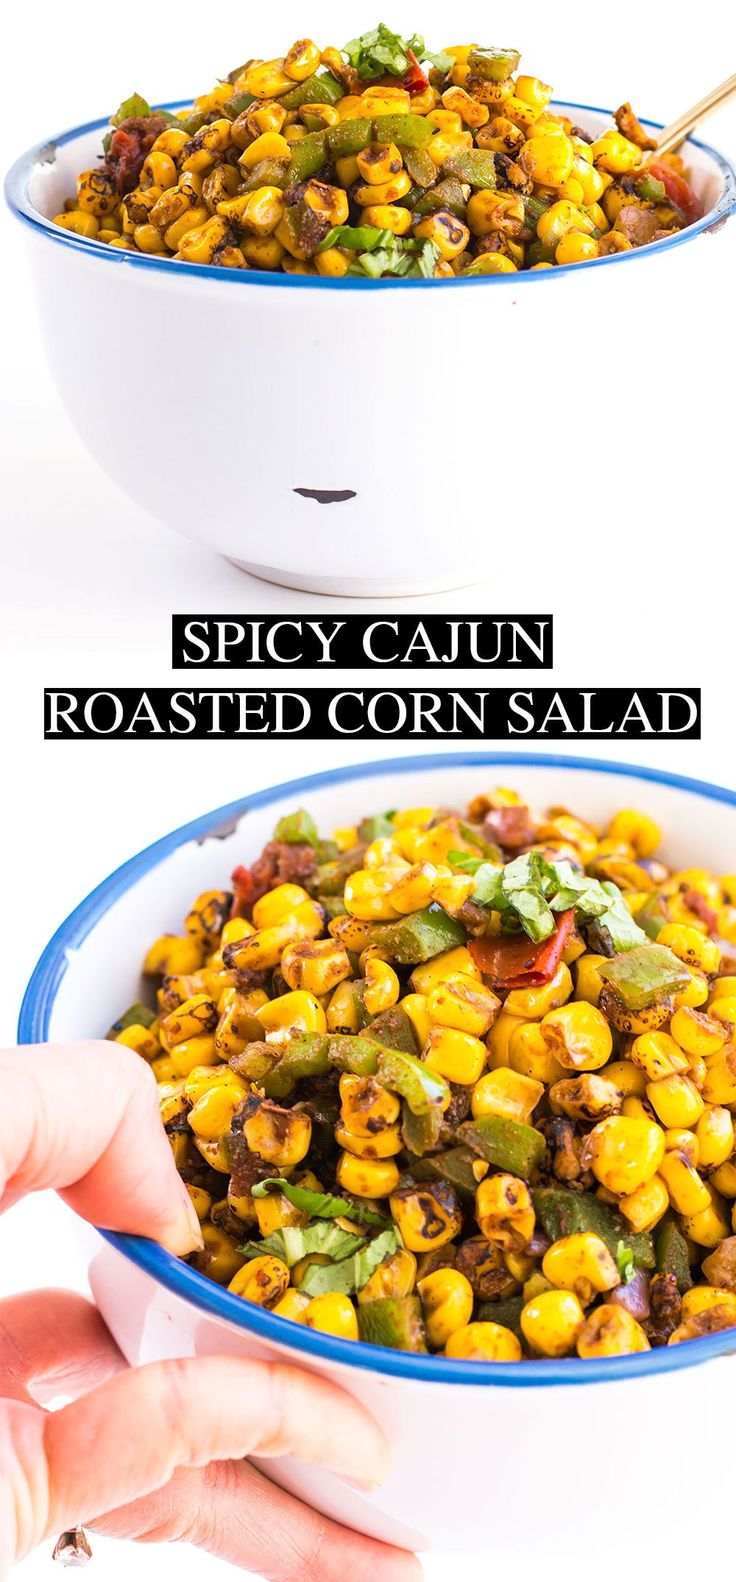 Spicy Cajun Roasted Corn Salad - Posh Journal  Spicy Cajun Roasted Corn Salad: Southwestern-style side dish/salad/salsa. The heat of cayenne pepper and cajun seasoning in this recipe will add an extra kick.